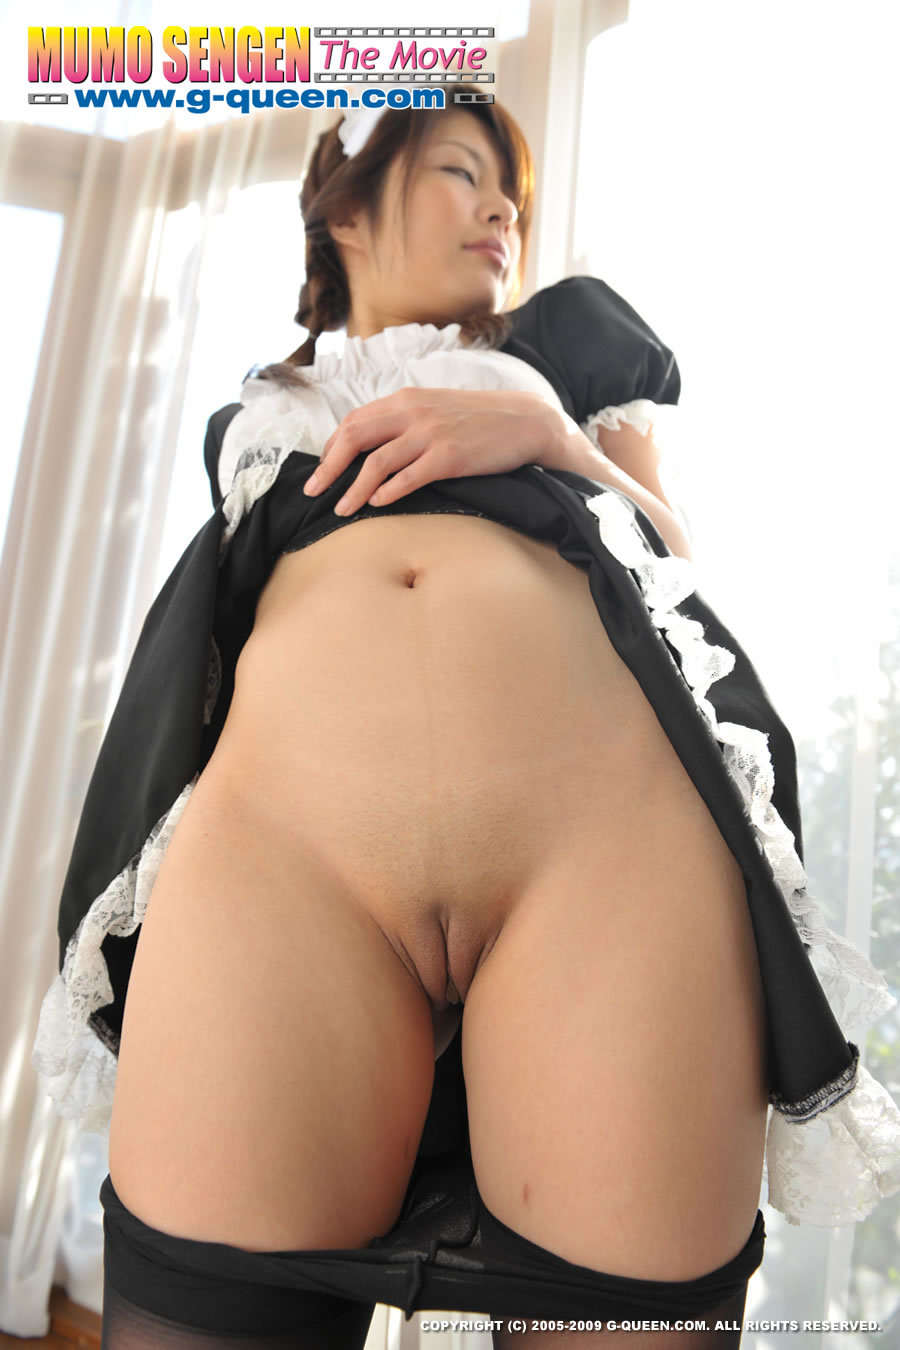 matchless theme, wife likes being spanked will not prompt me